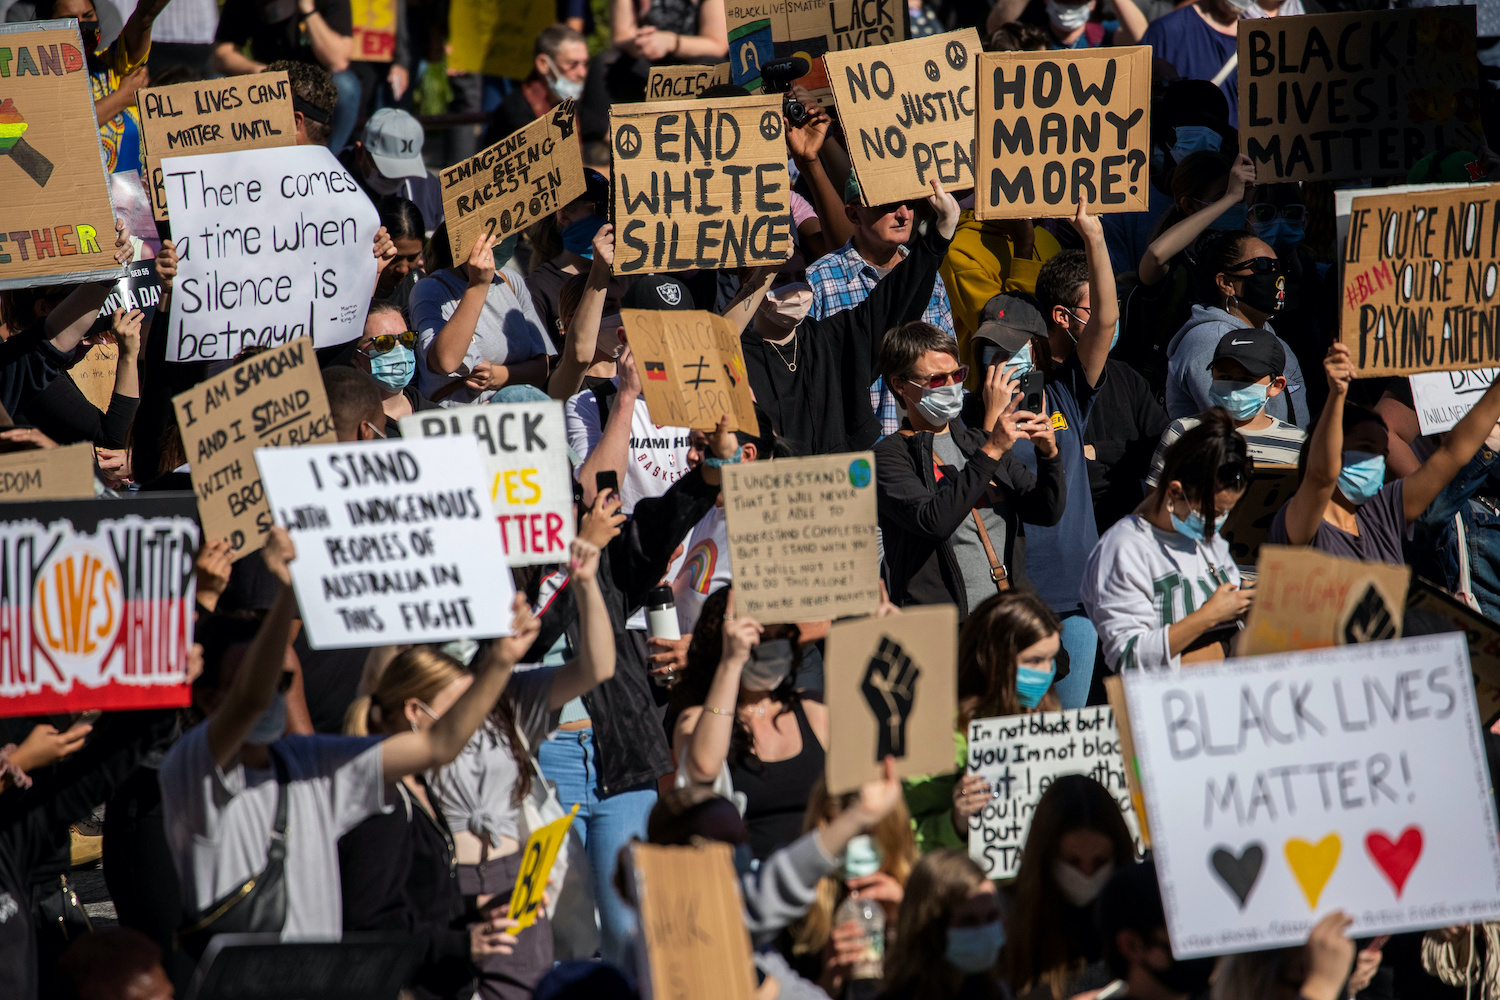 Protesters participate in a Black Lives Matter rally in Brisbane, Australia on Saturday. (AAP via Reuters)